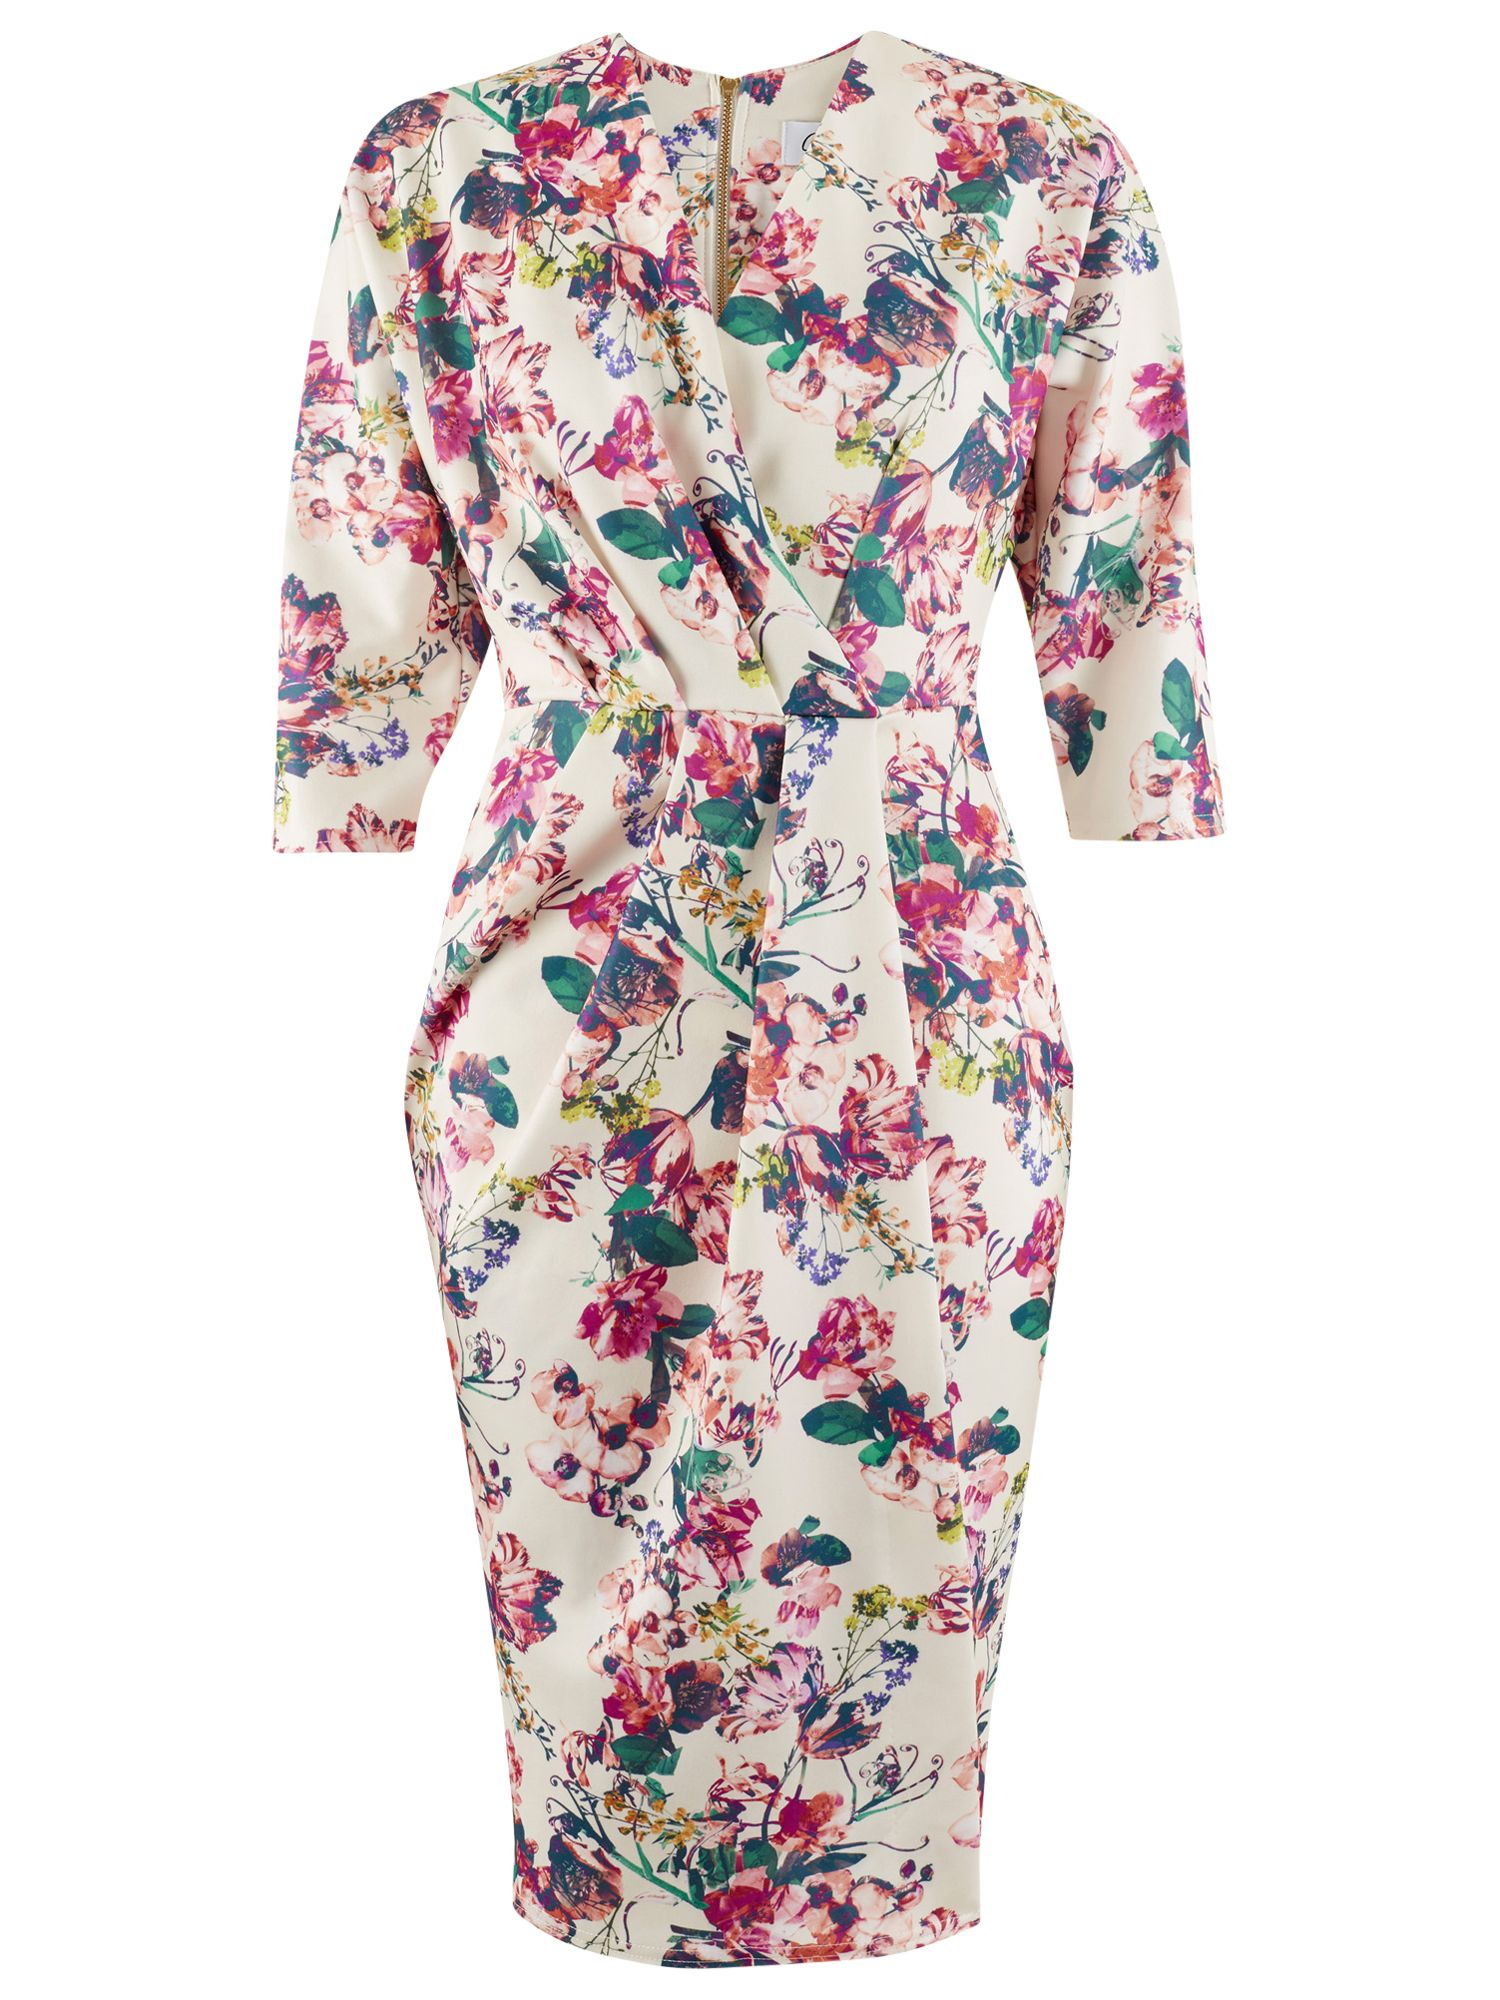 Closet Closet Floral Print Scuba Wrap Dress, Multi